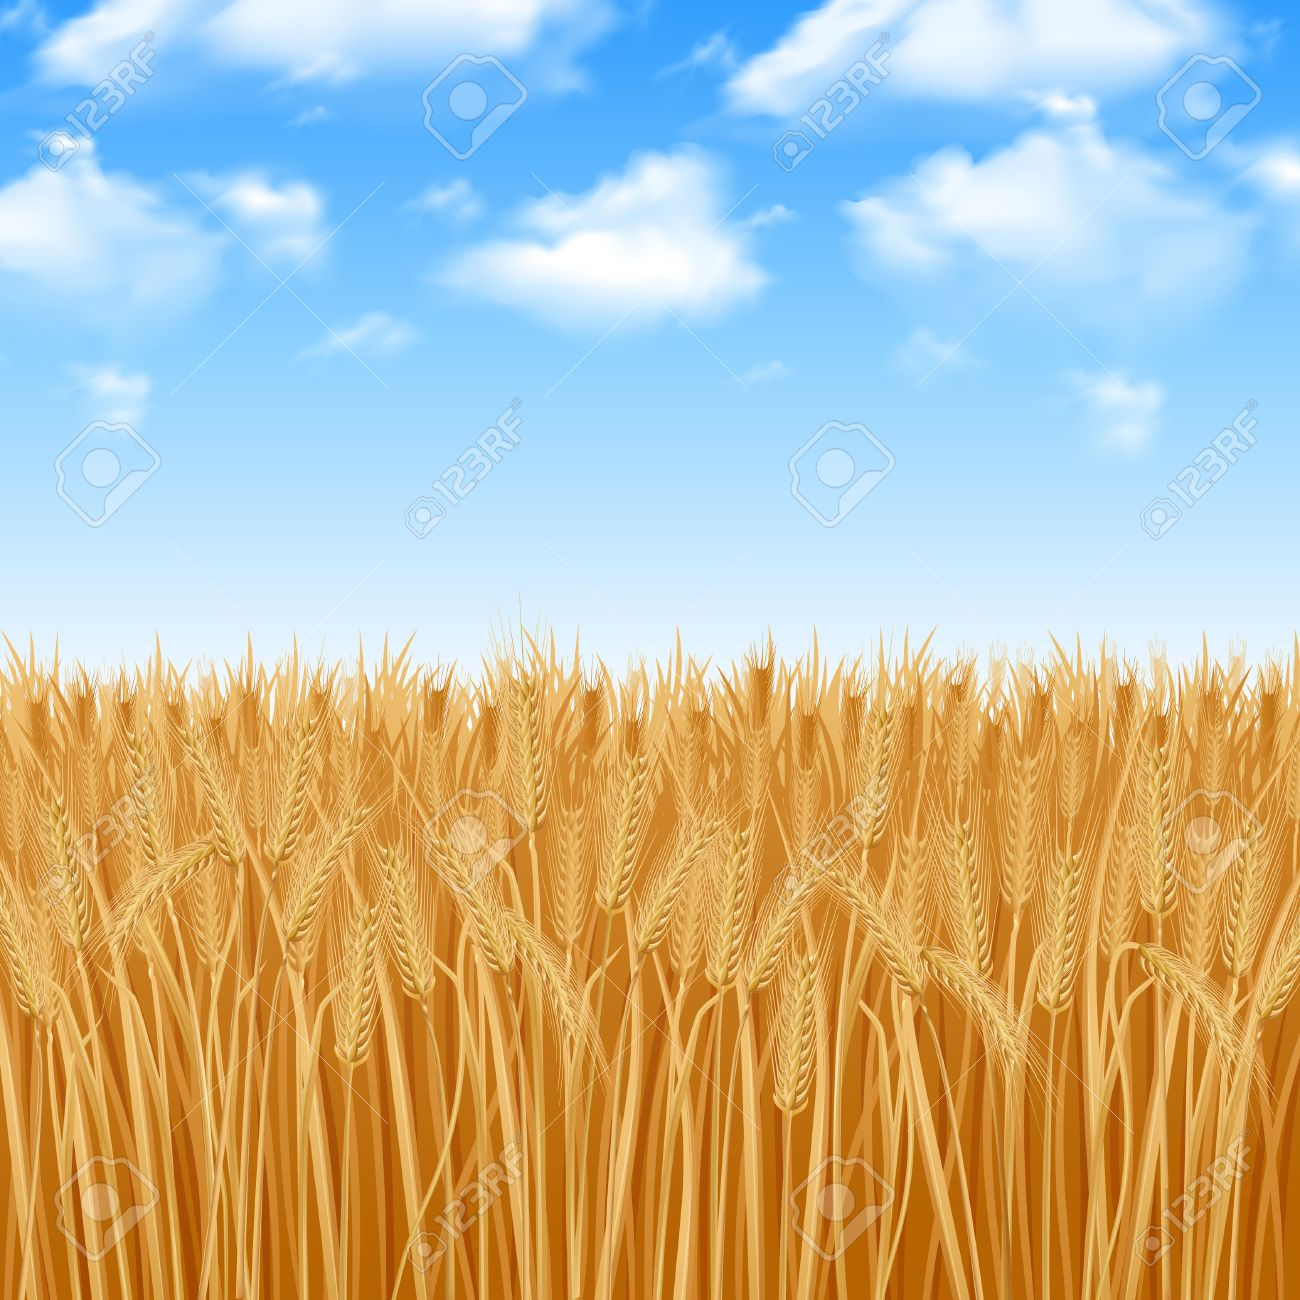 Golden yellow wheat field and summer sky background vector illustration - 42622278